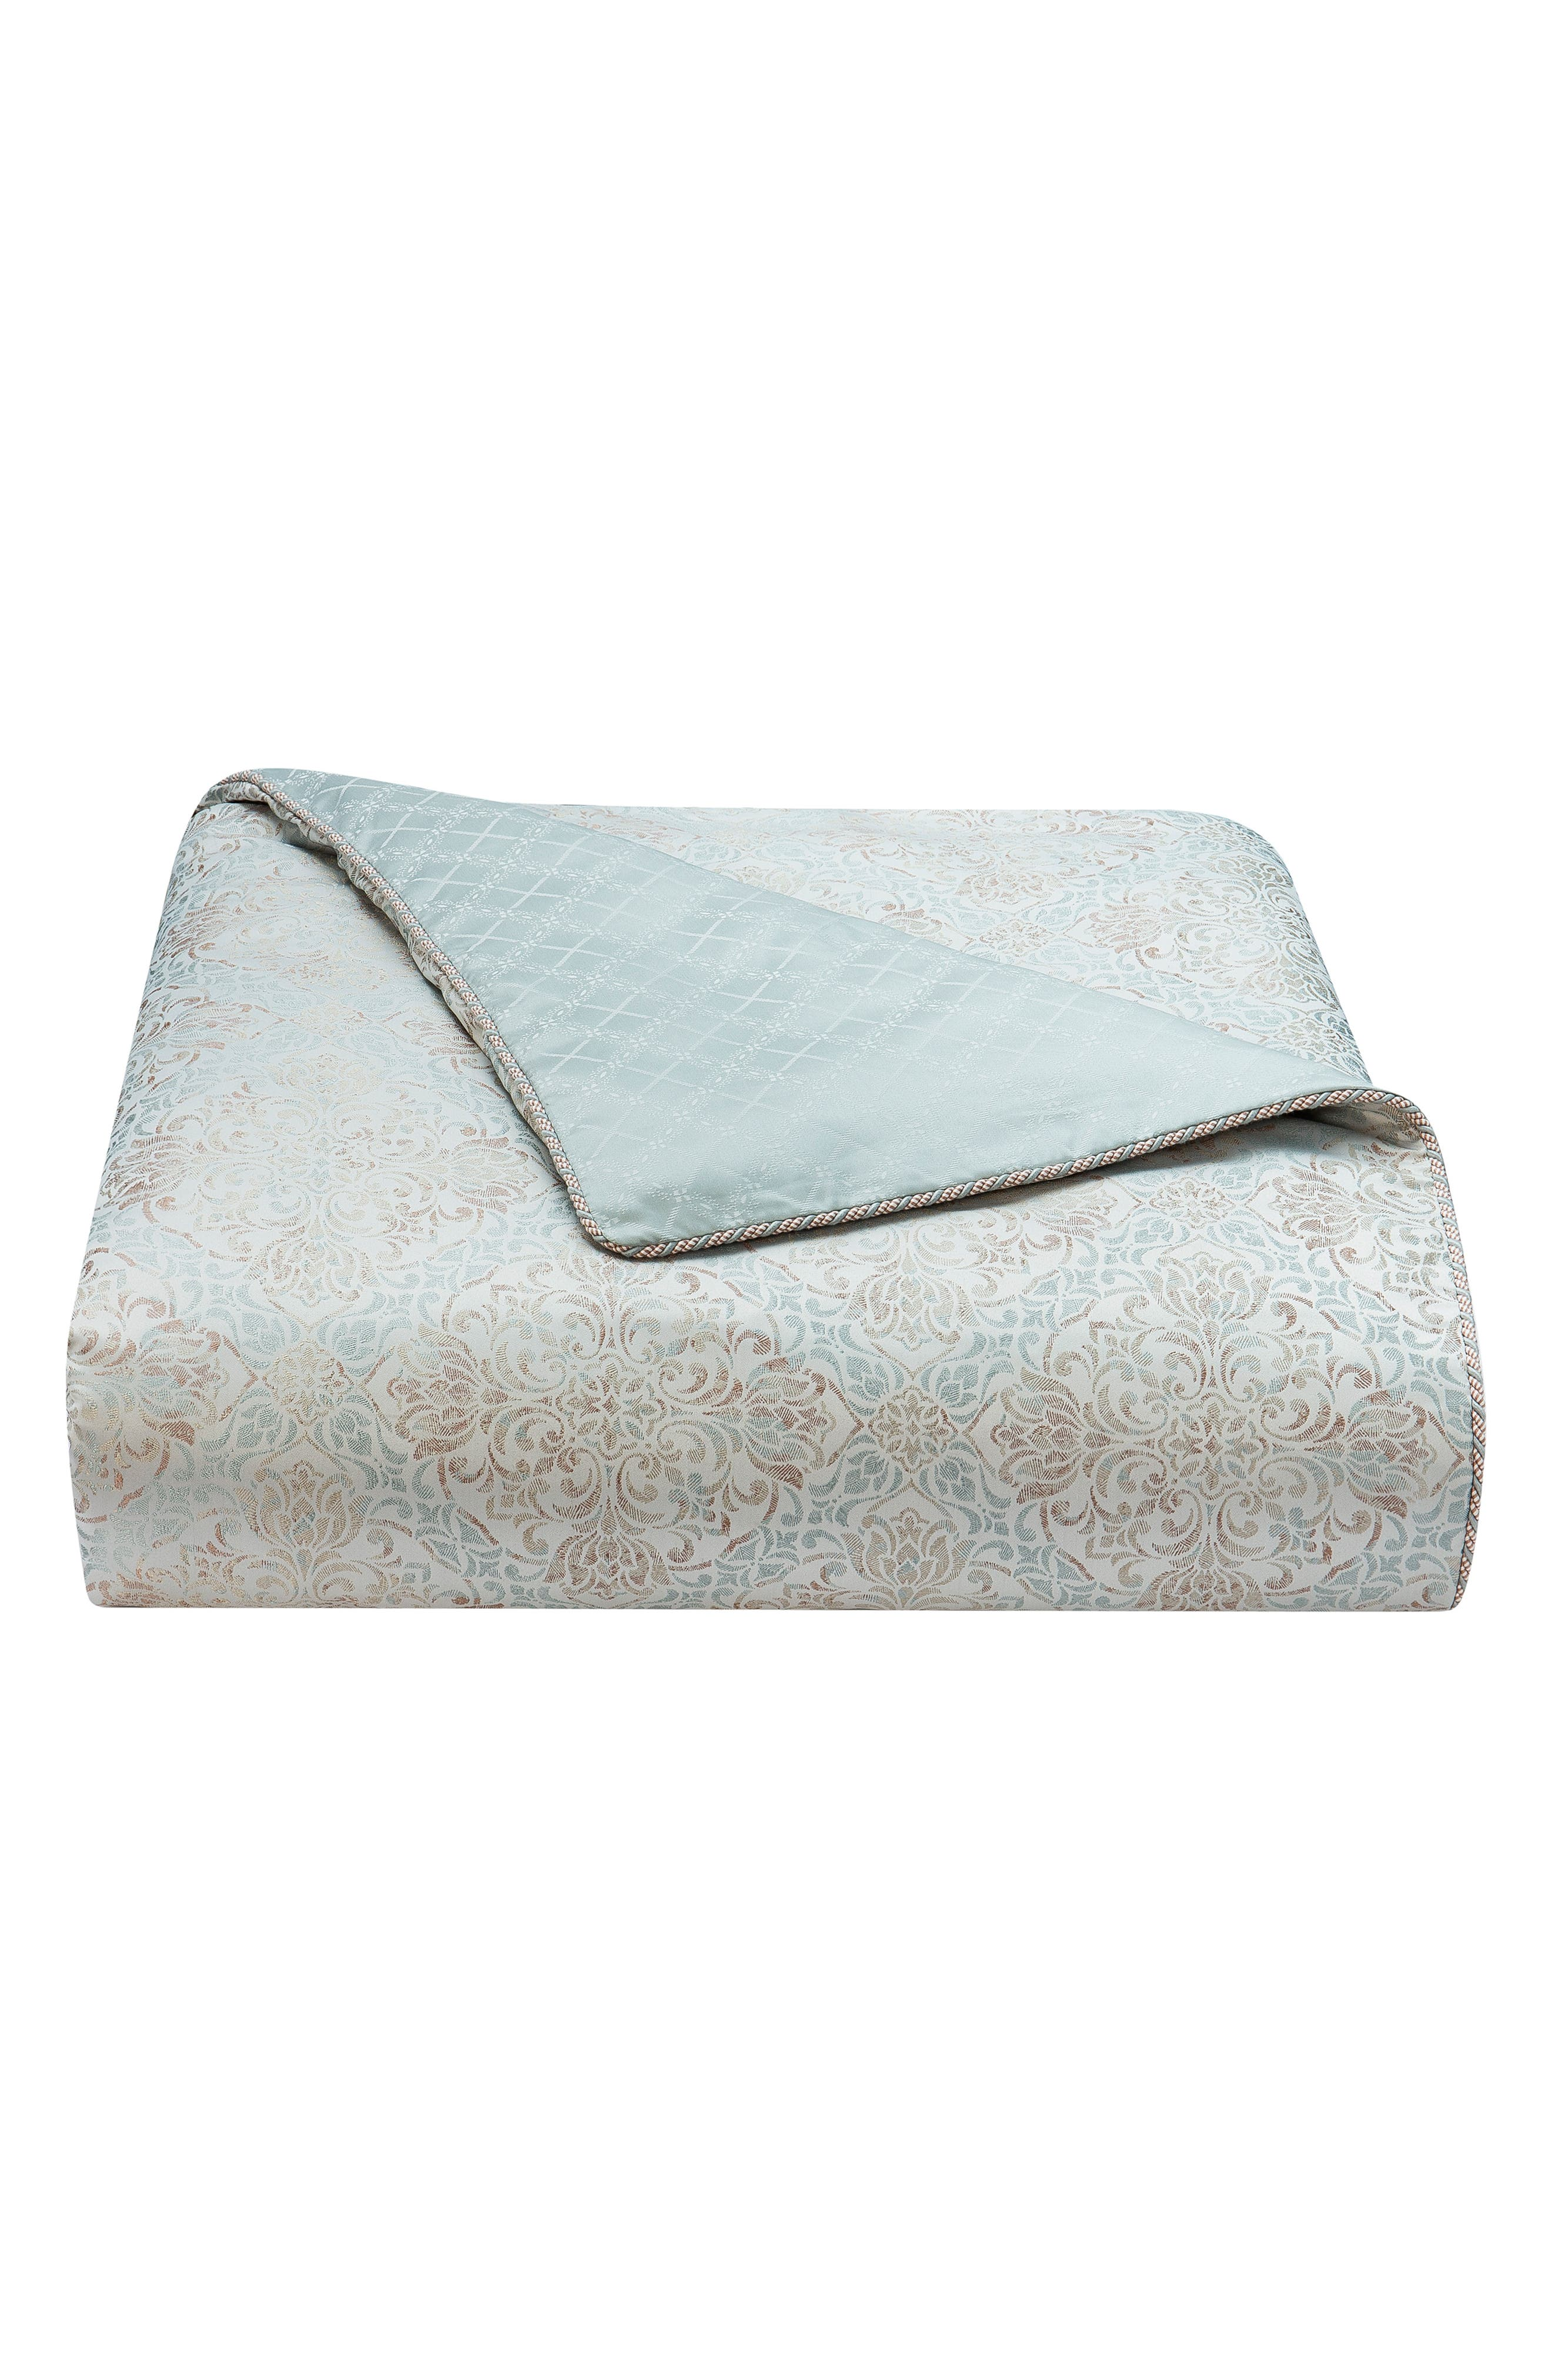 WATERFORD, Gwyneth Reversible Comforter, Sham & Bedskirt Set, Alternate thumbnail 6, color, PALE BLUE